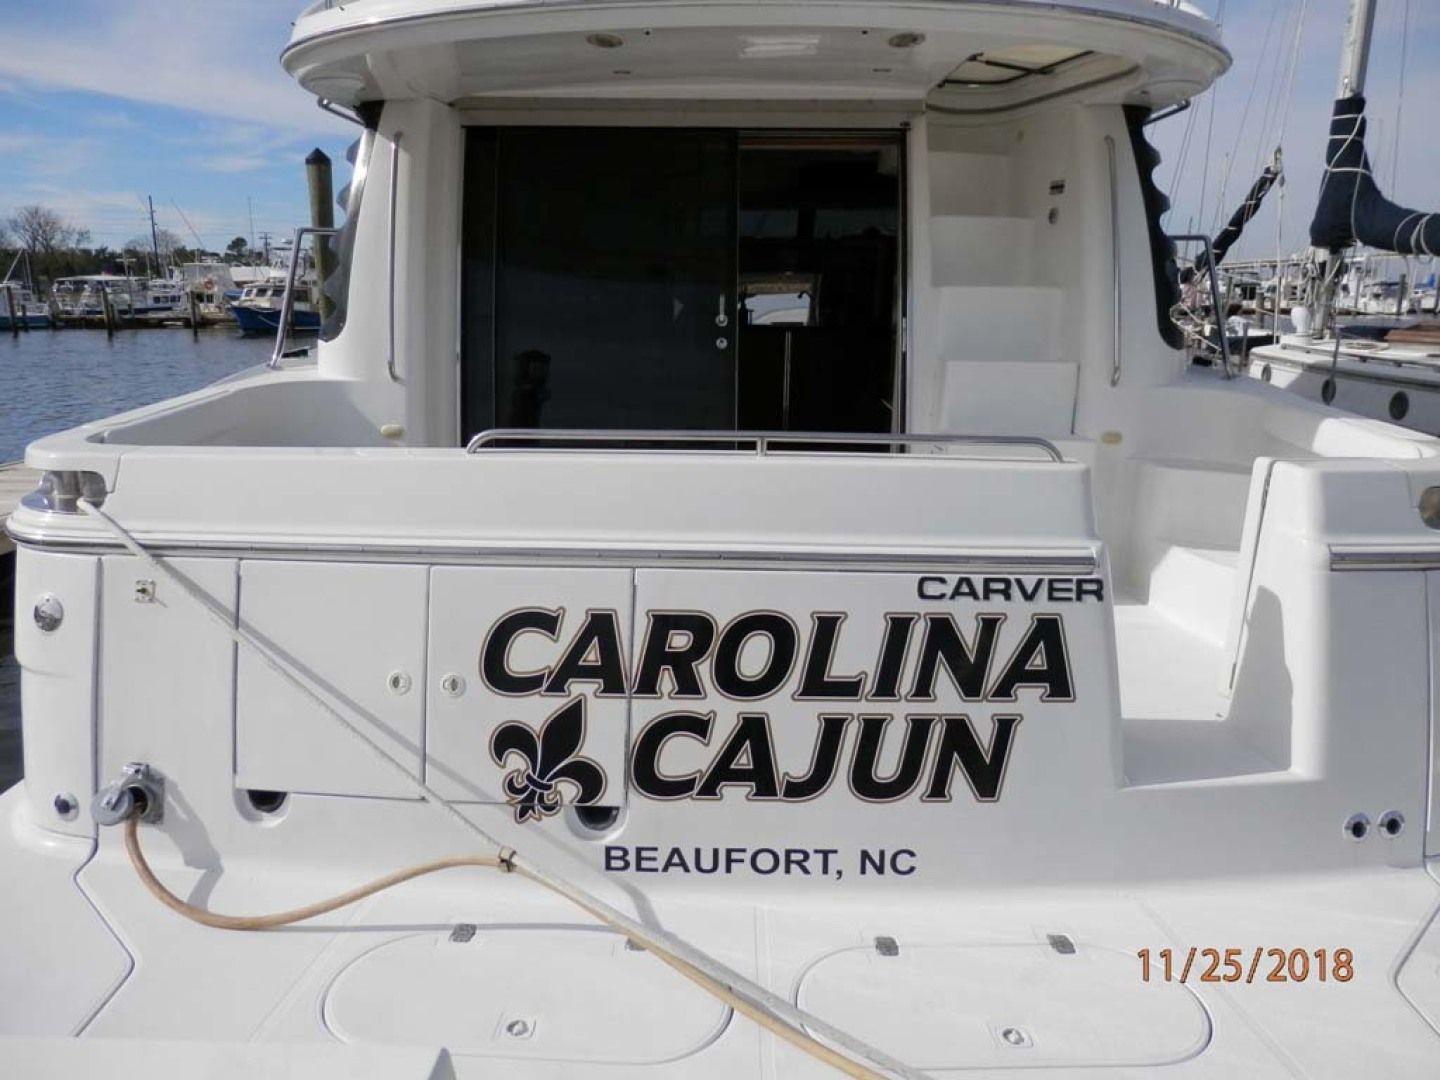 Carver-450 Voyager Pilothouse 1999-Carolina Cajun Beaufort-North Carolina-United States-Stern View-1093072 | Thumbnail